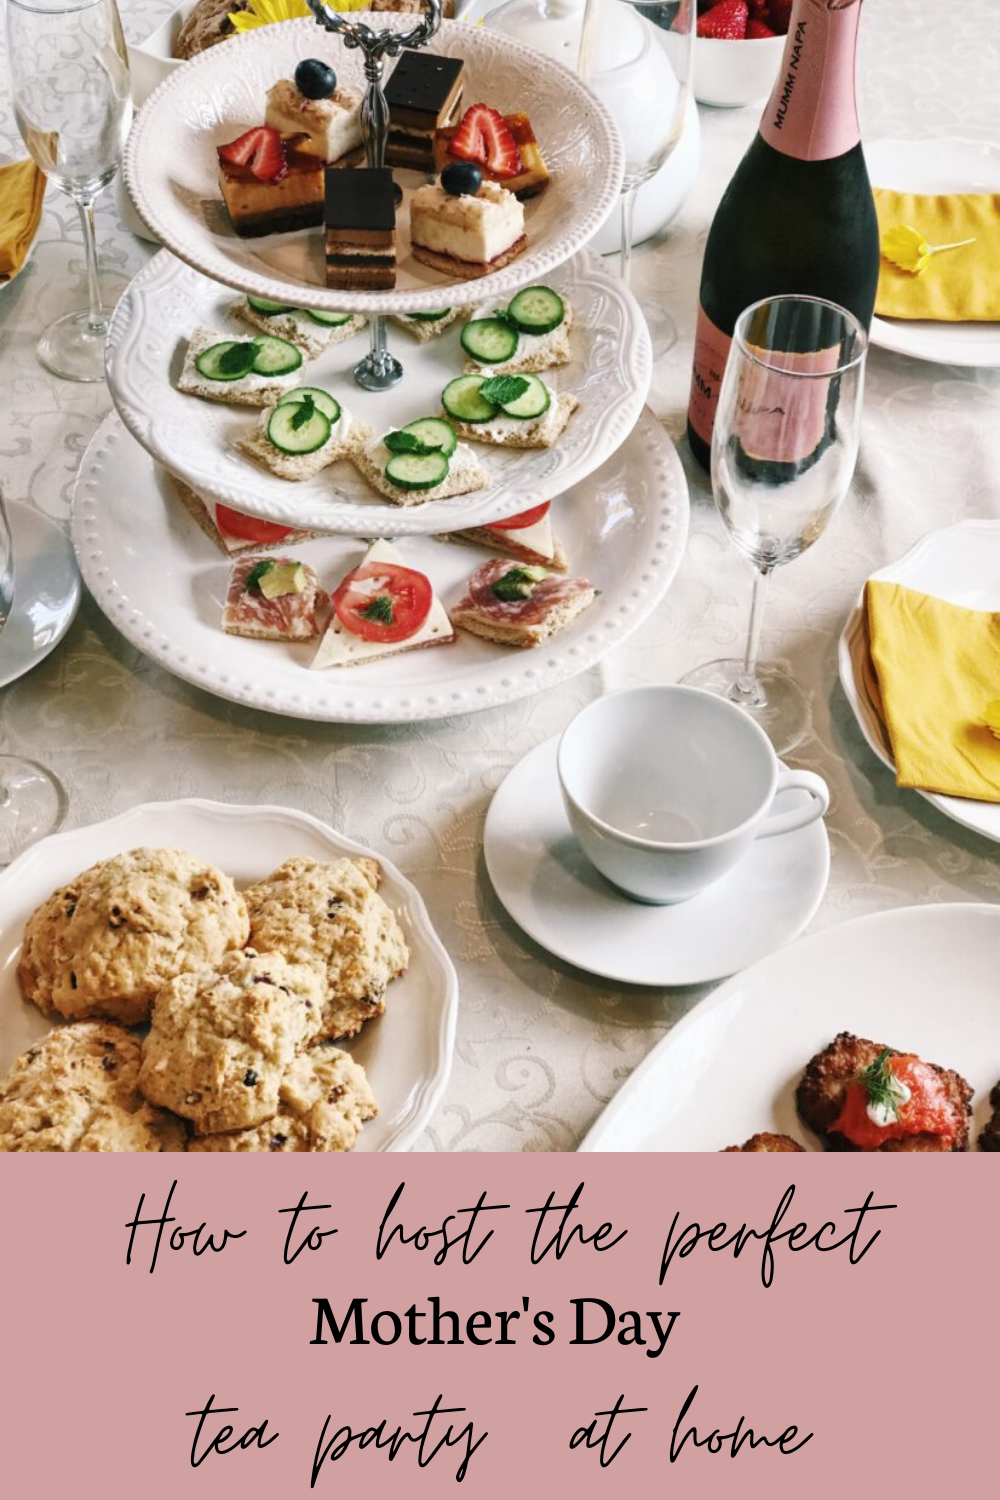 How to Throw the Perfect Tea Party | Hosting Mother's Day Brunch